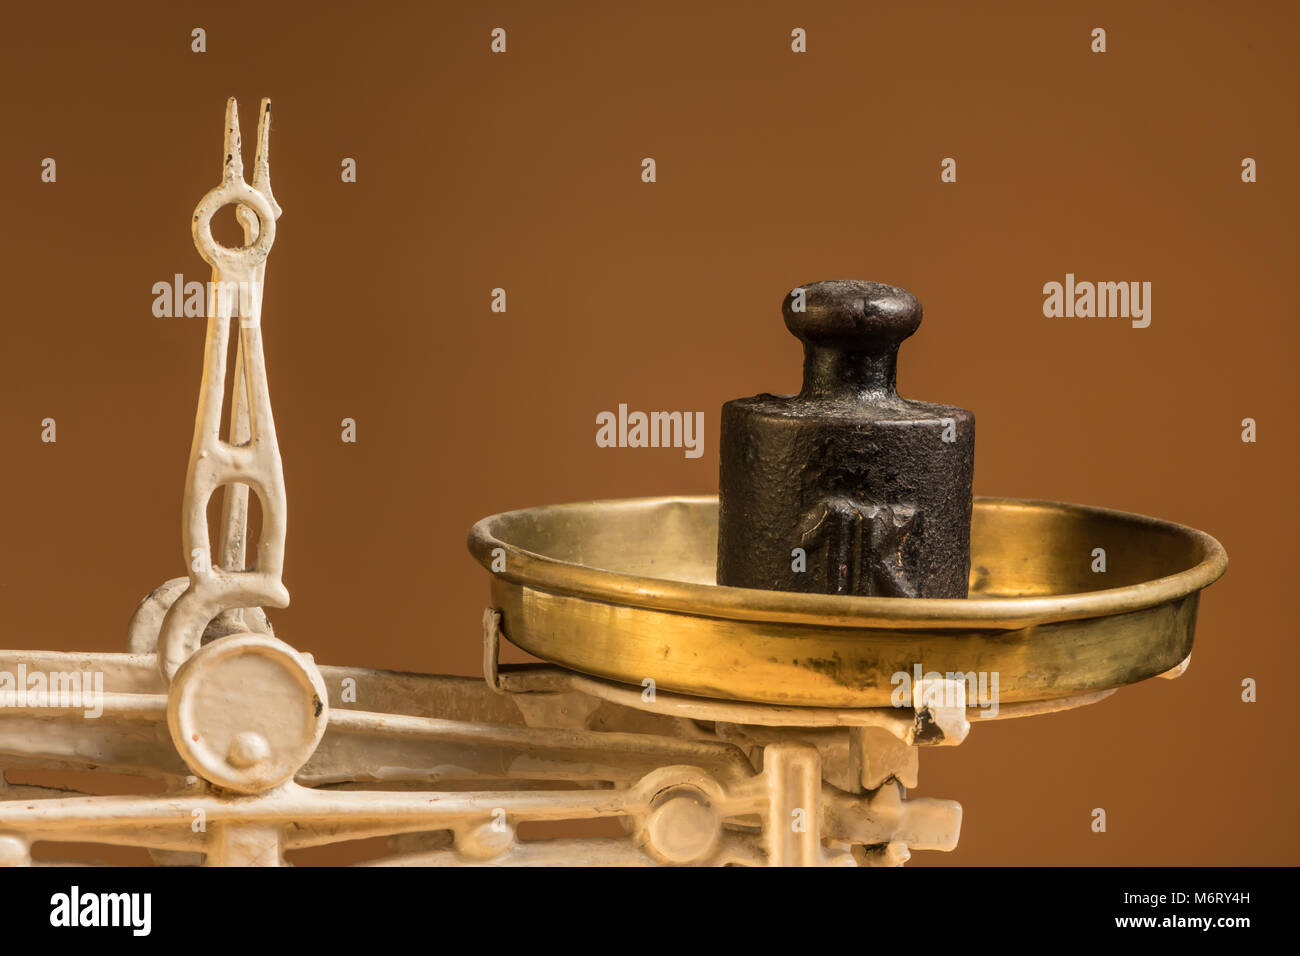 Old white vintage kitchen scale, brass with weights, brown background - Stock Image